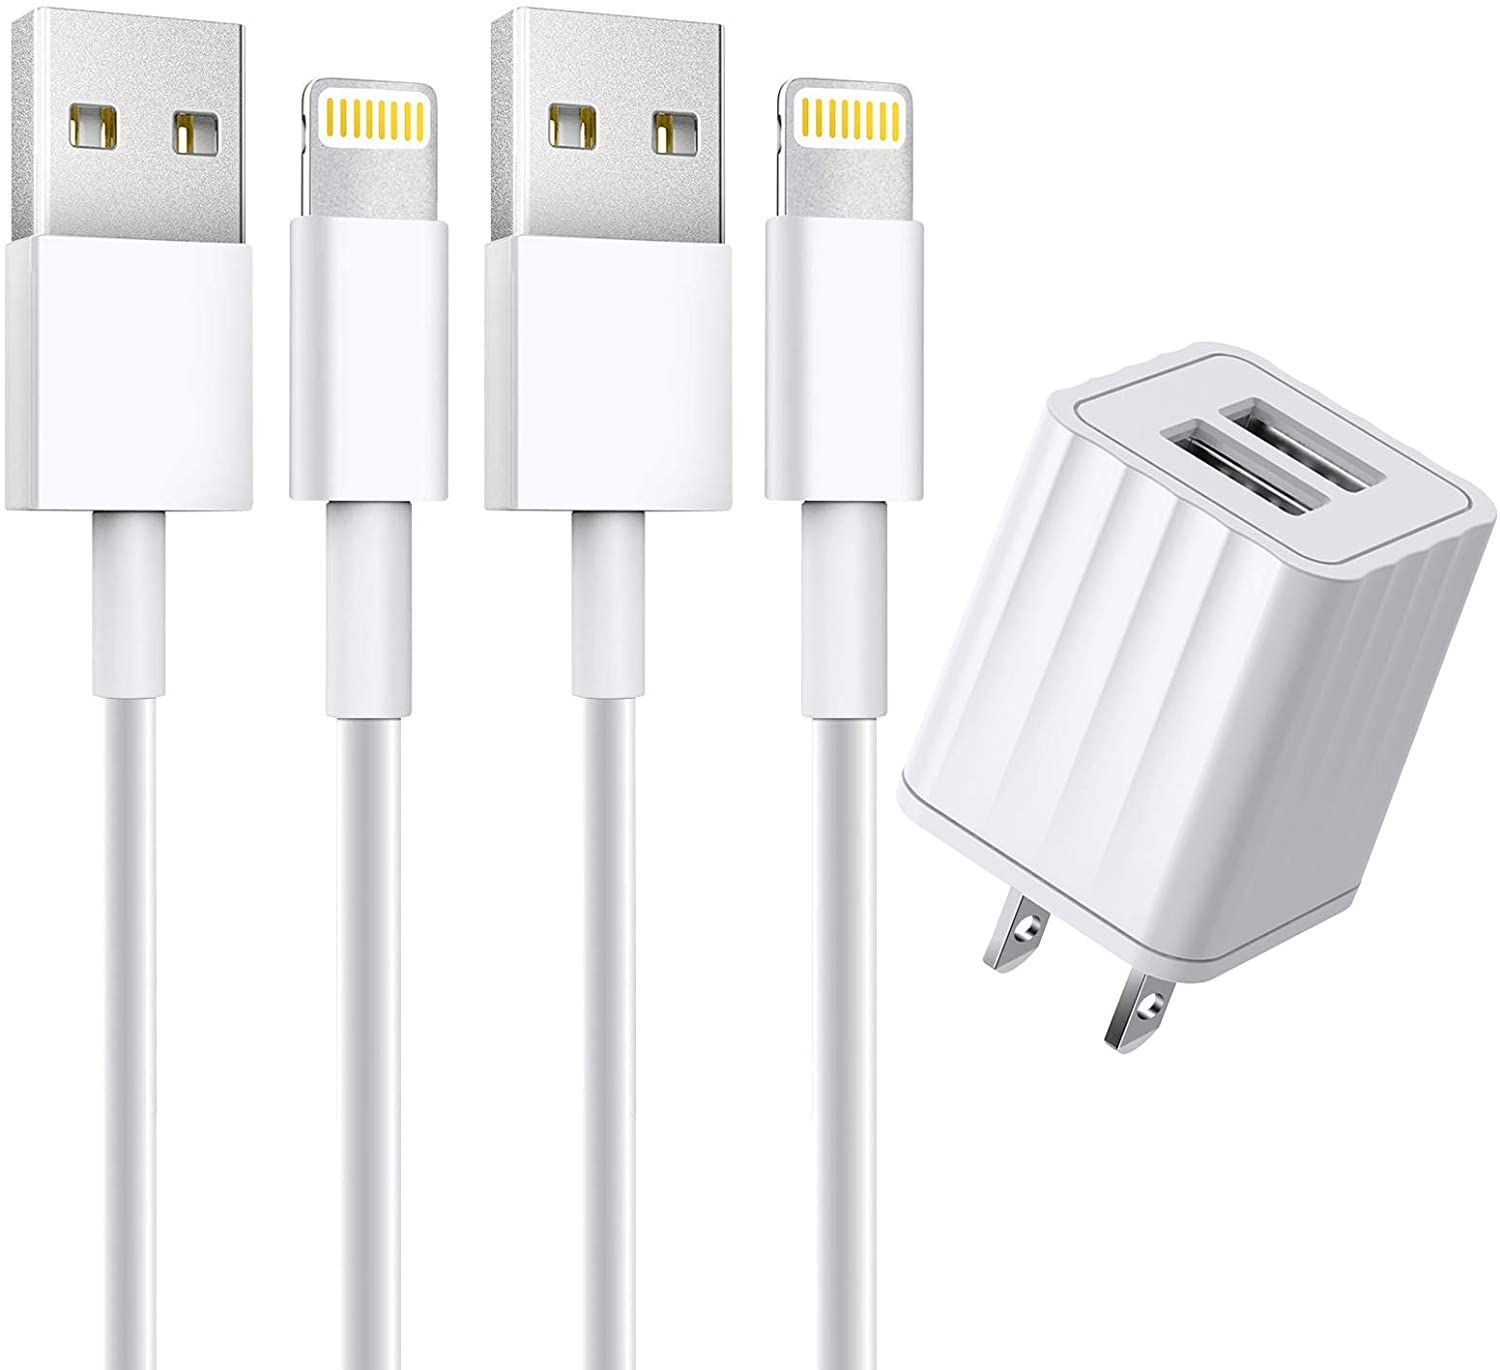 [Apple MFi Certified] iPhone Charger, 2 Pack 6FT Lightning Cable Fast Charging Data Sync Transfer Cord with Dual Port USB Wall Charger(UL Listed)Plug Compatible with iPhone 12/12 Pro/11/XS/XR/X/8/iPad